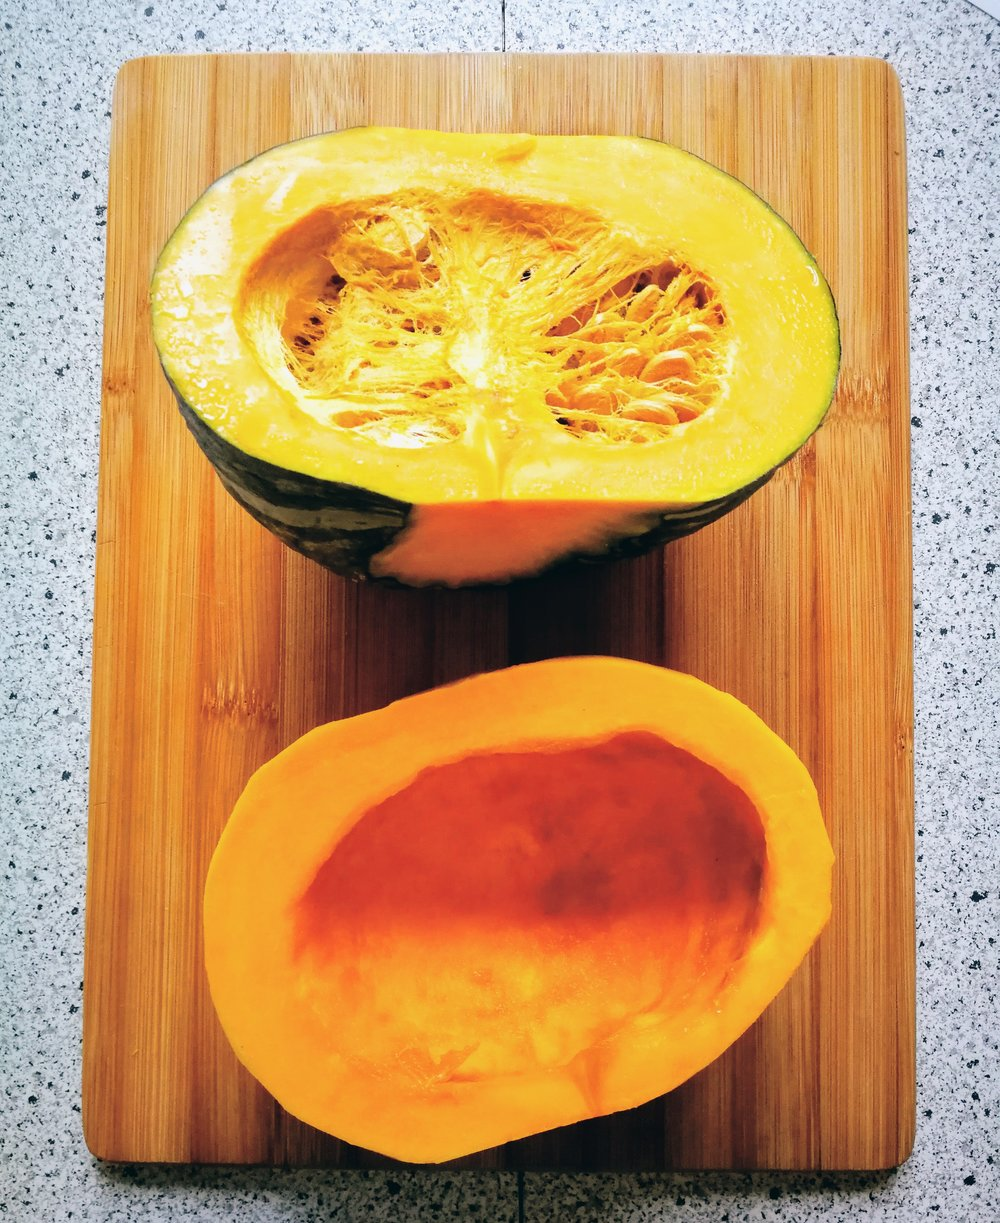 Kabocha squash before and after removing seeds (see step one)